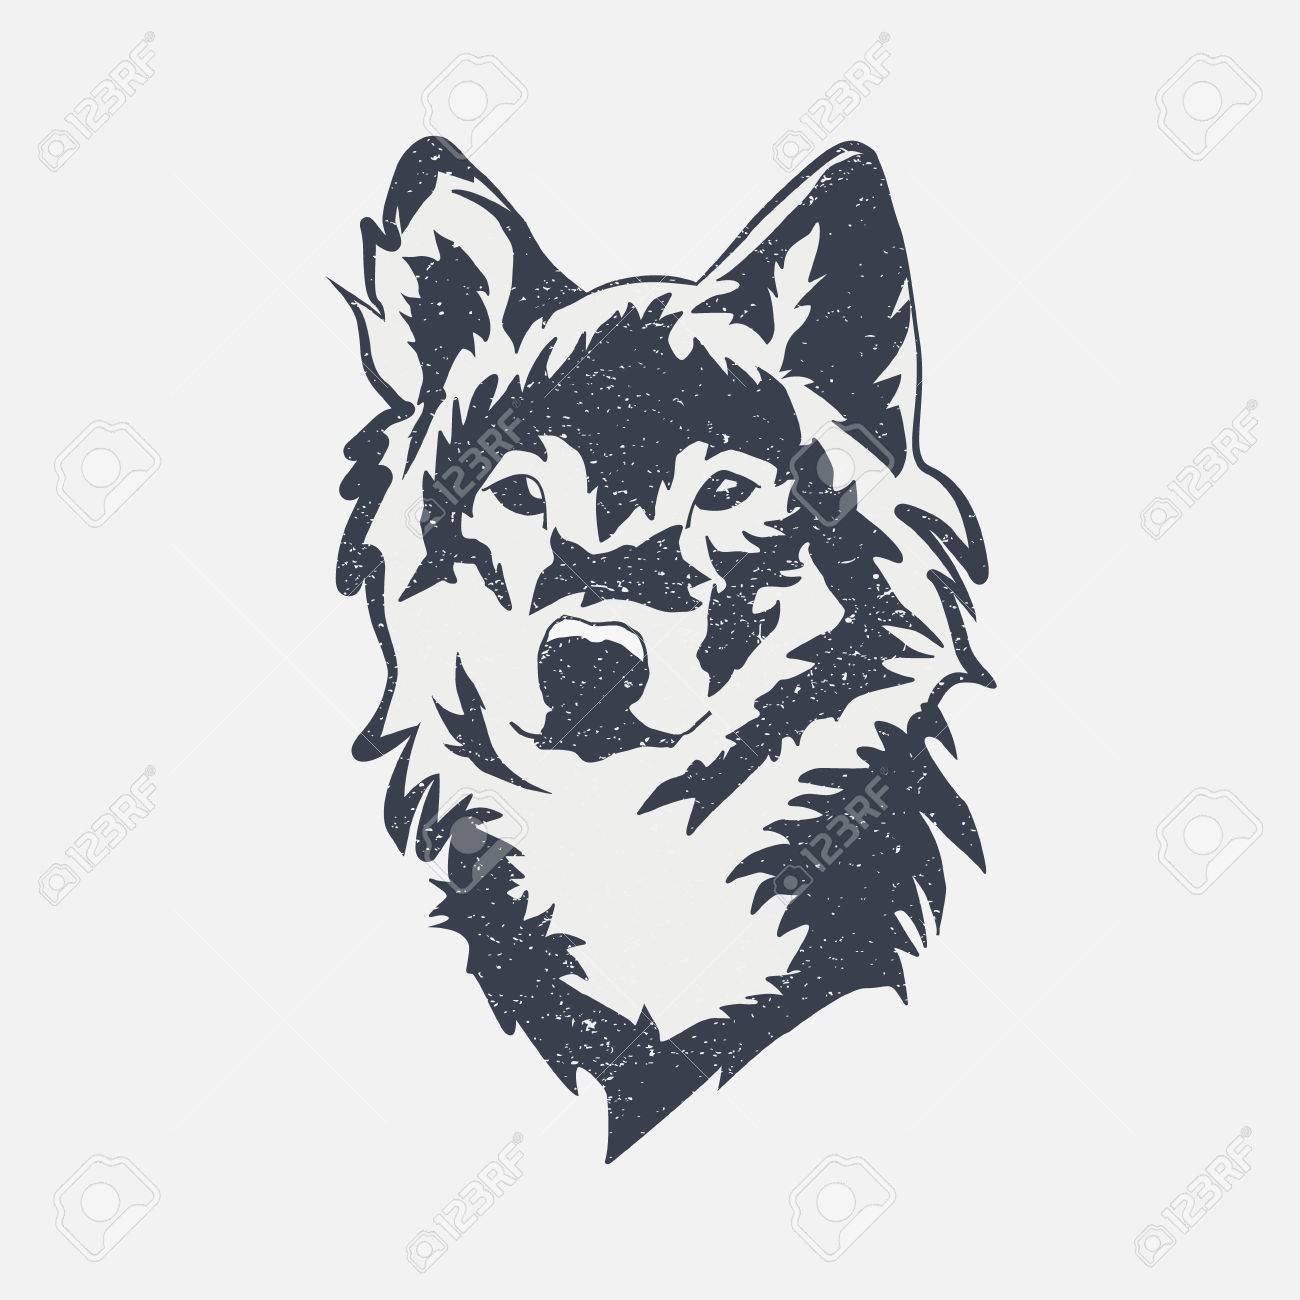 Wild Wolf Icon Royalty Free Cliparts Vectors And Stock Illustration Image 83868071 Here you can explore hq wolf icon transparent illustrations, icons and clipart with filter setting like polish your personal project or design with these wolf icon transparent png images, make it even. wild wolf icon